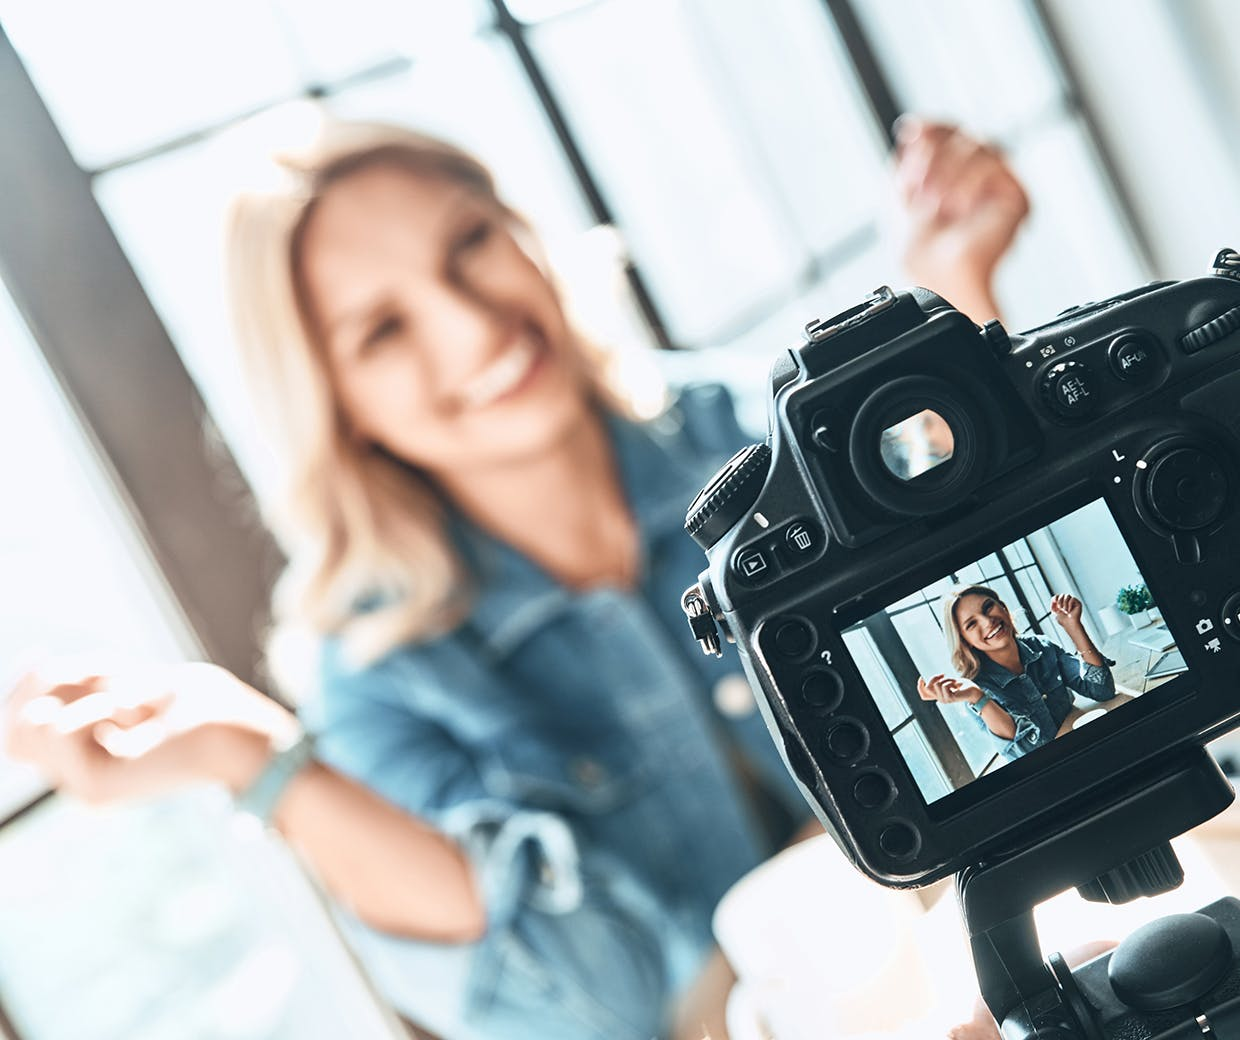 A third of brands admit to not disclosing influencer partnerships